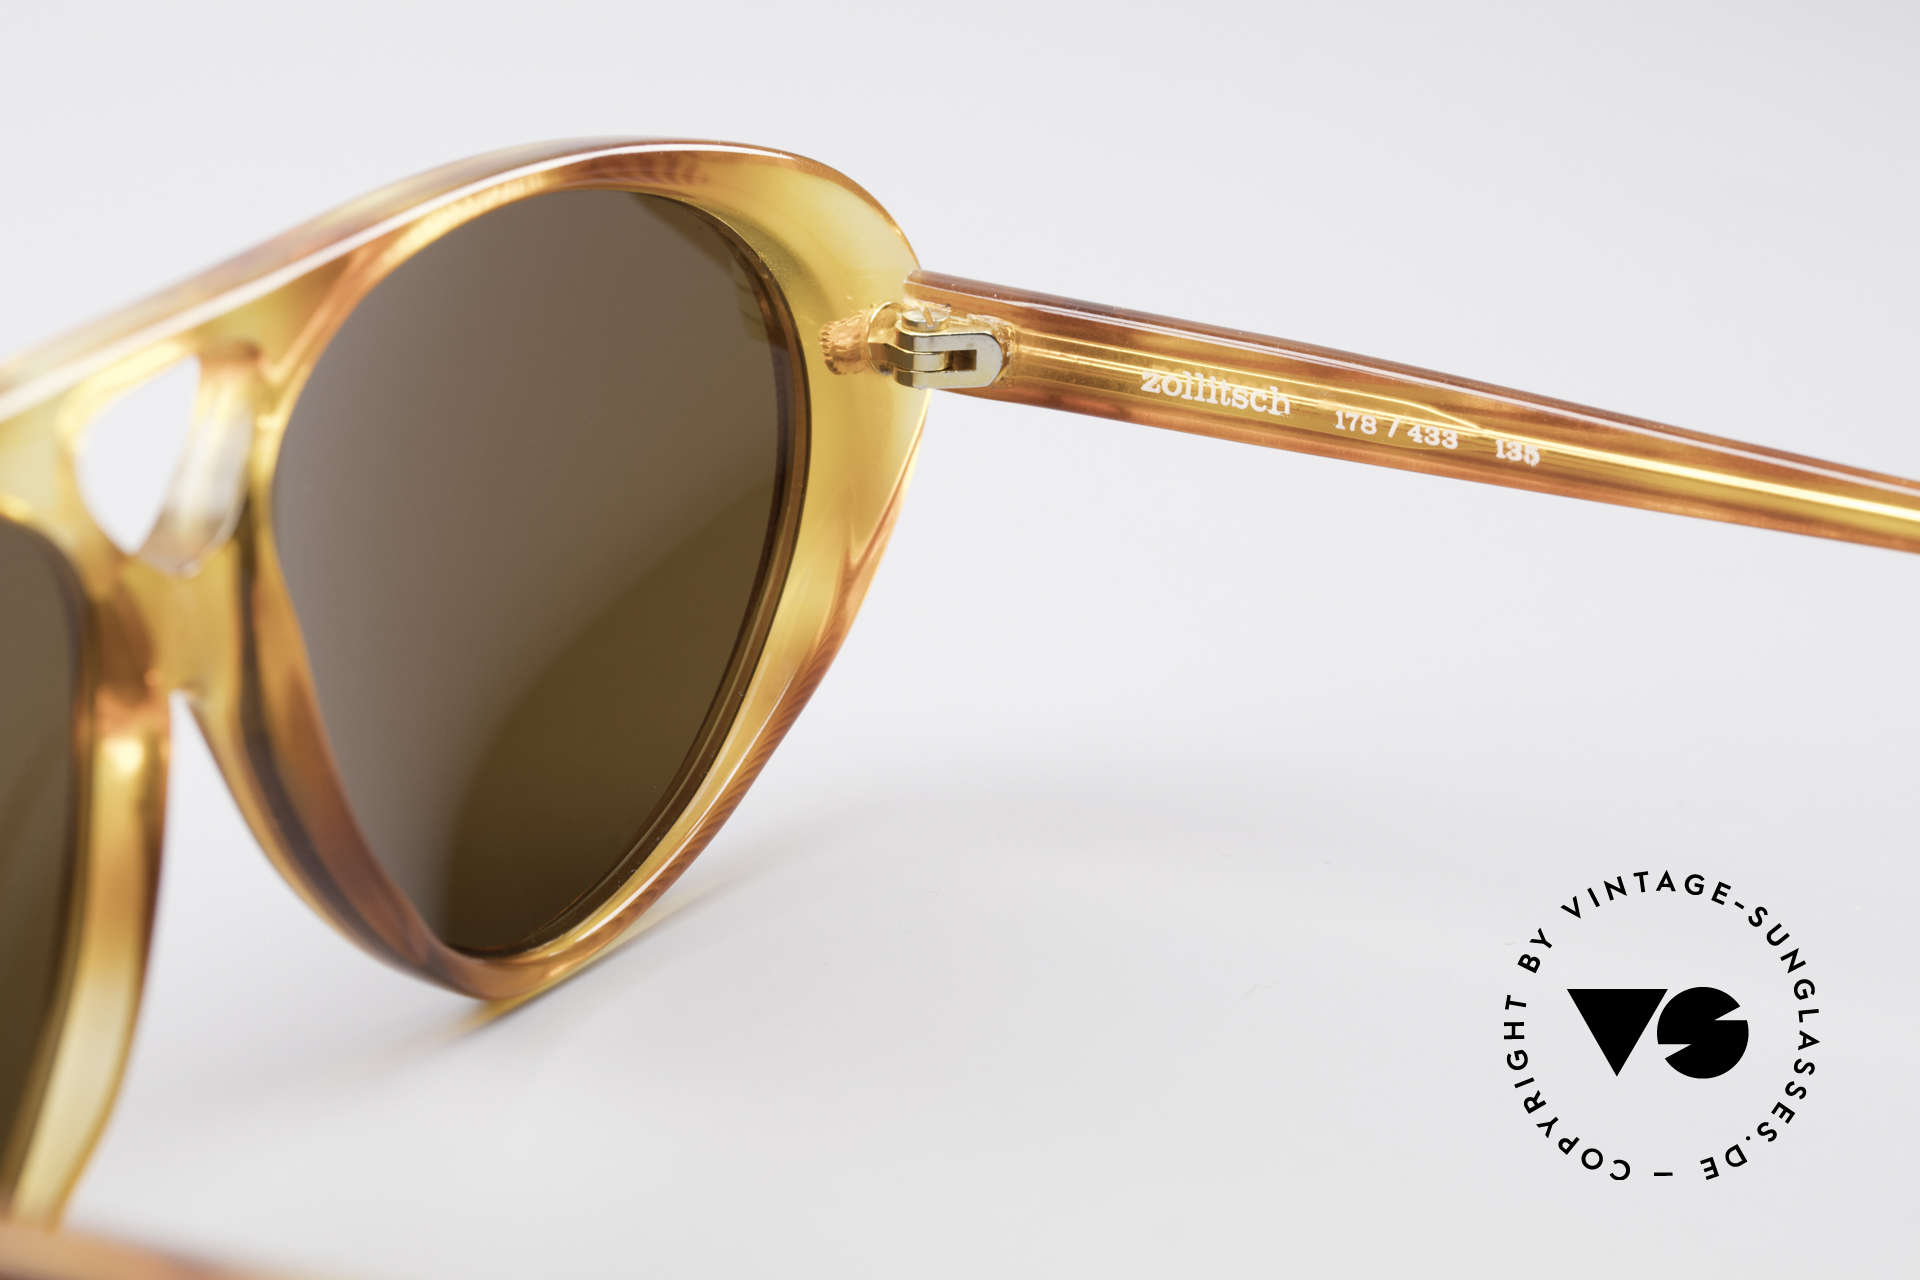 Zollitsch 178 Extraordinary Sunglasses, lenses can be replaced with prescriptions optionally, Made for Men and Women